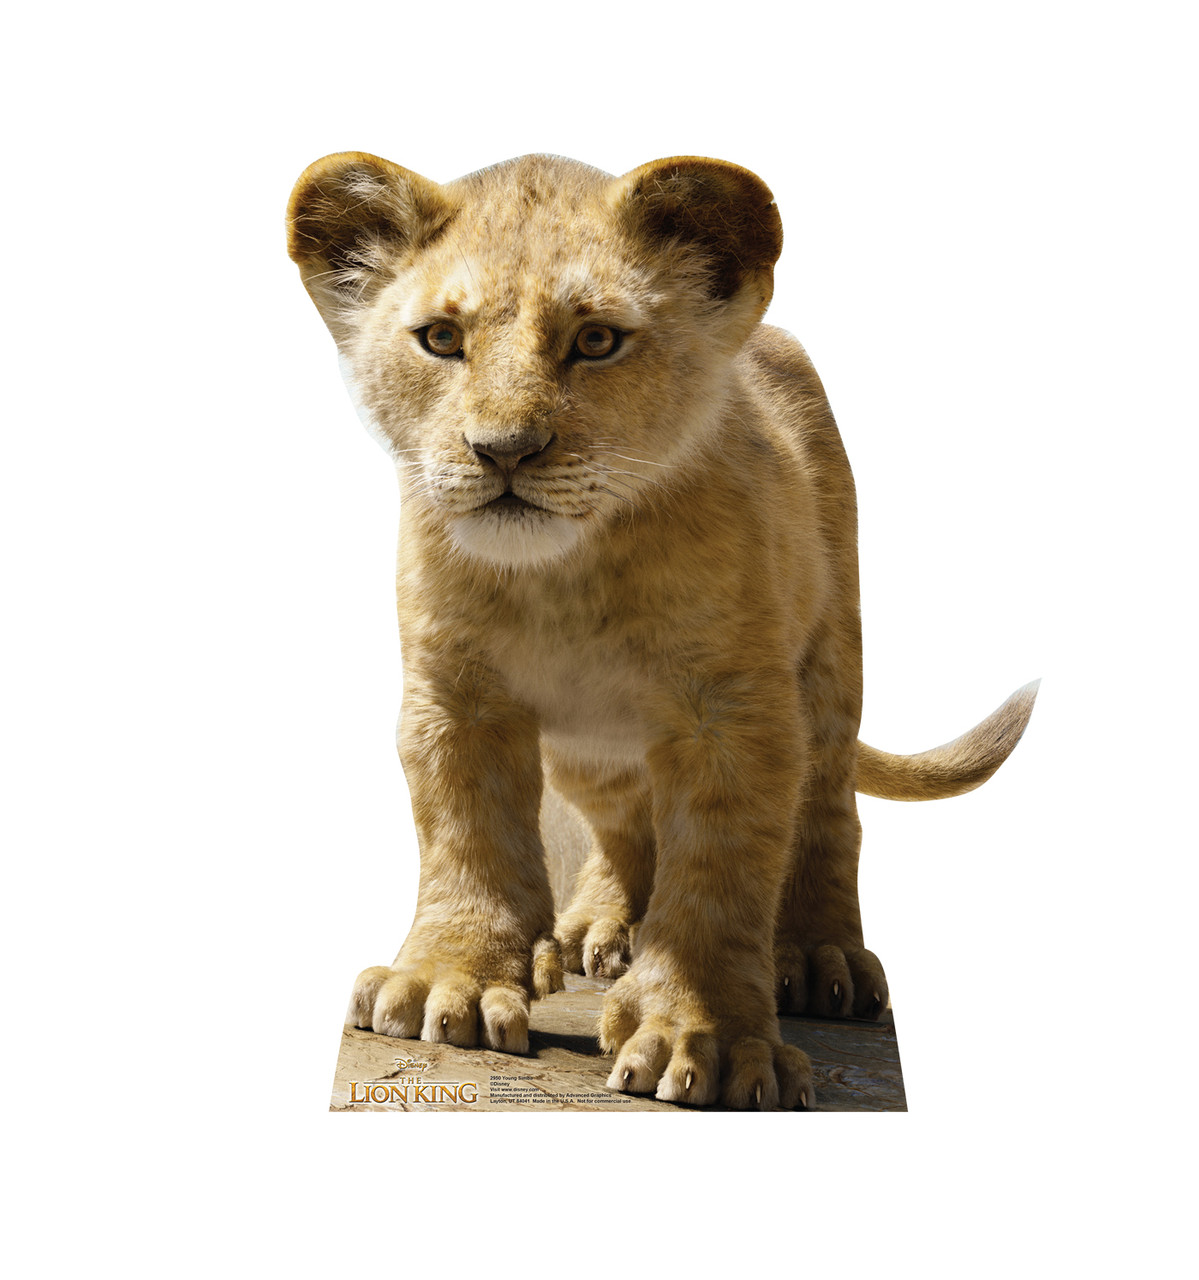 Life-size cardboard standee of Young Simba from Disney's live action film The Lion King Front View